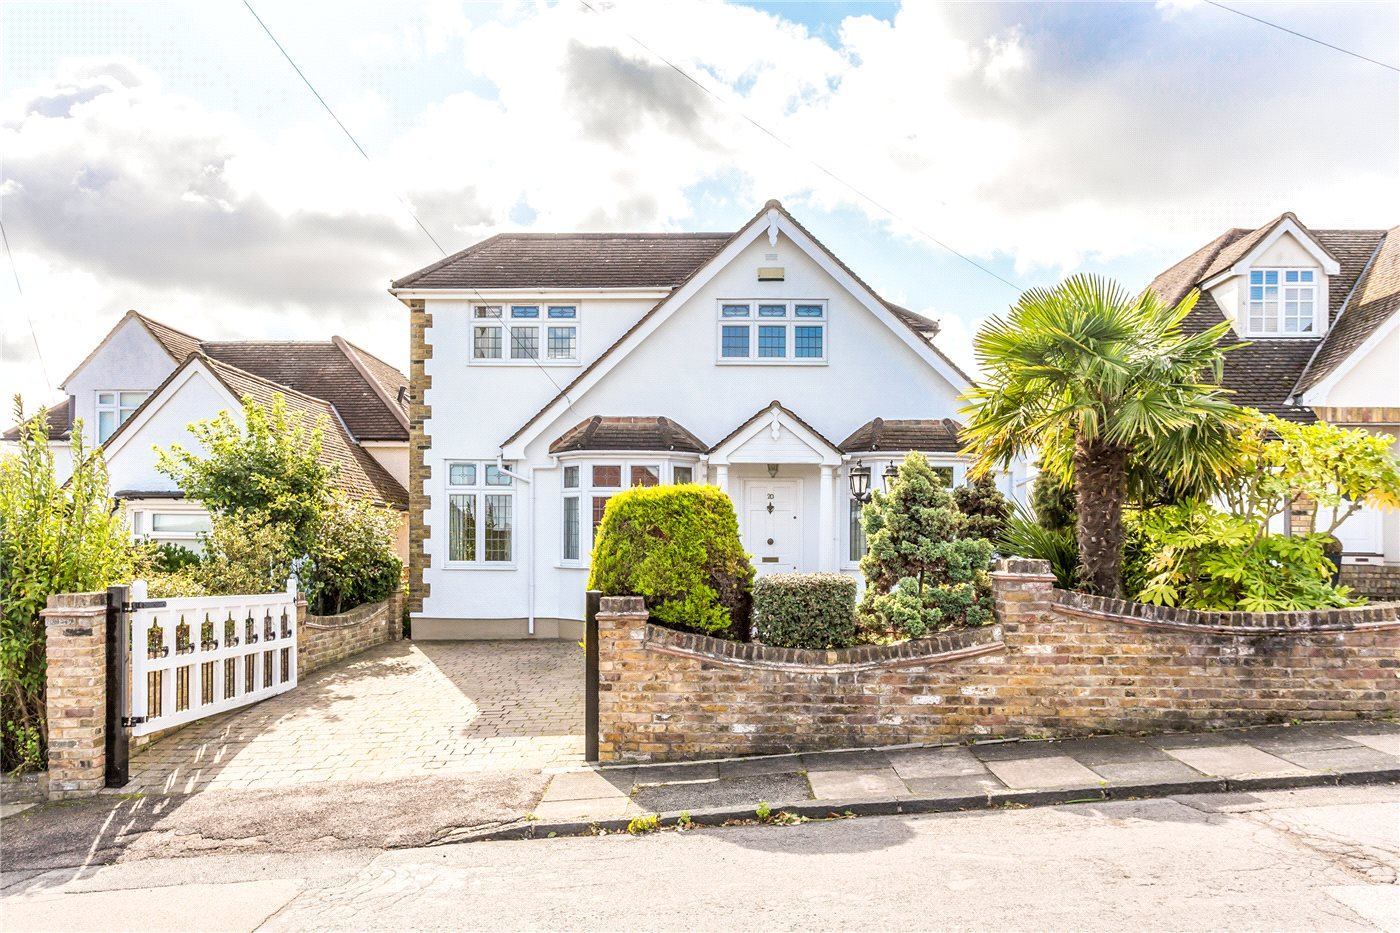 4 Bedrooms Detached House for sale in Cypress Avenue, Enfield, EN2